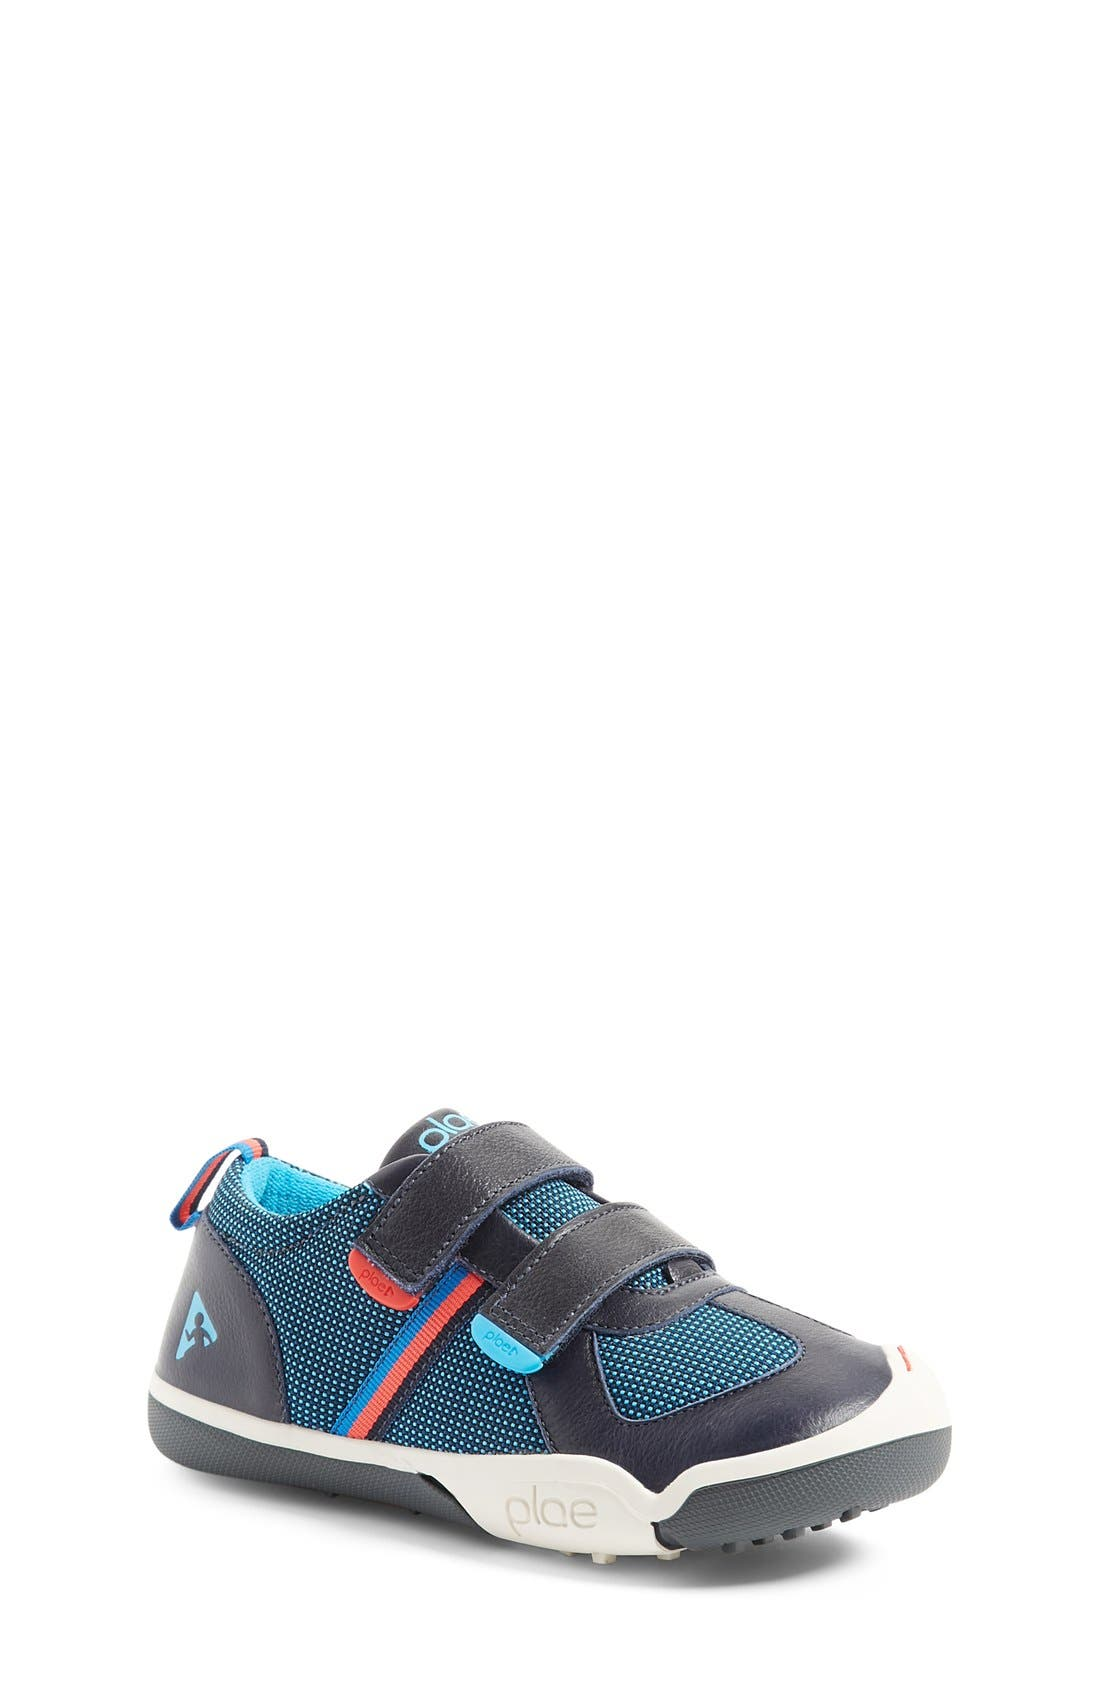 Alternate Image 1 Selected - PLAE Charlie Customizable Sneaker (Toddler, Little Kid & Big Kid)